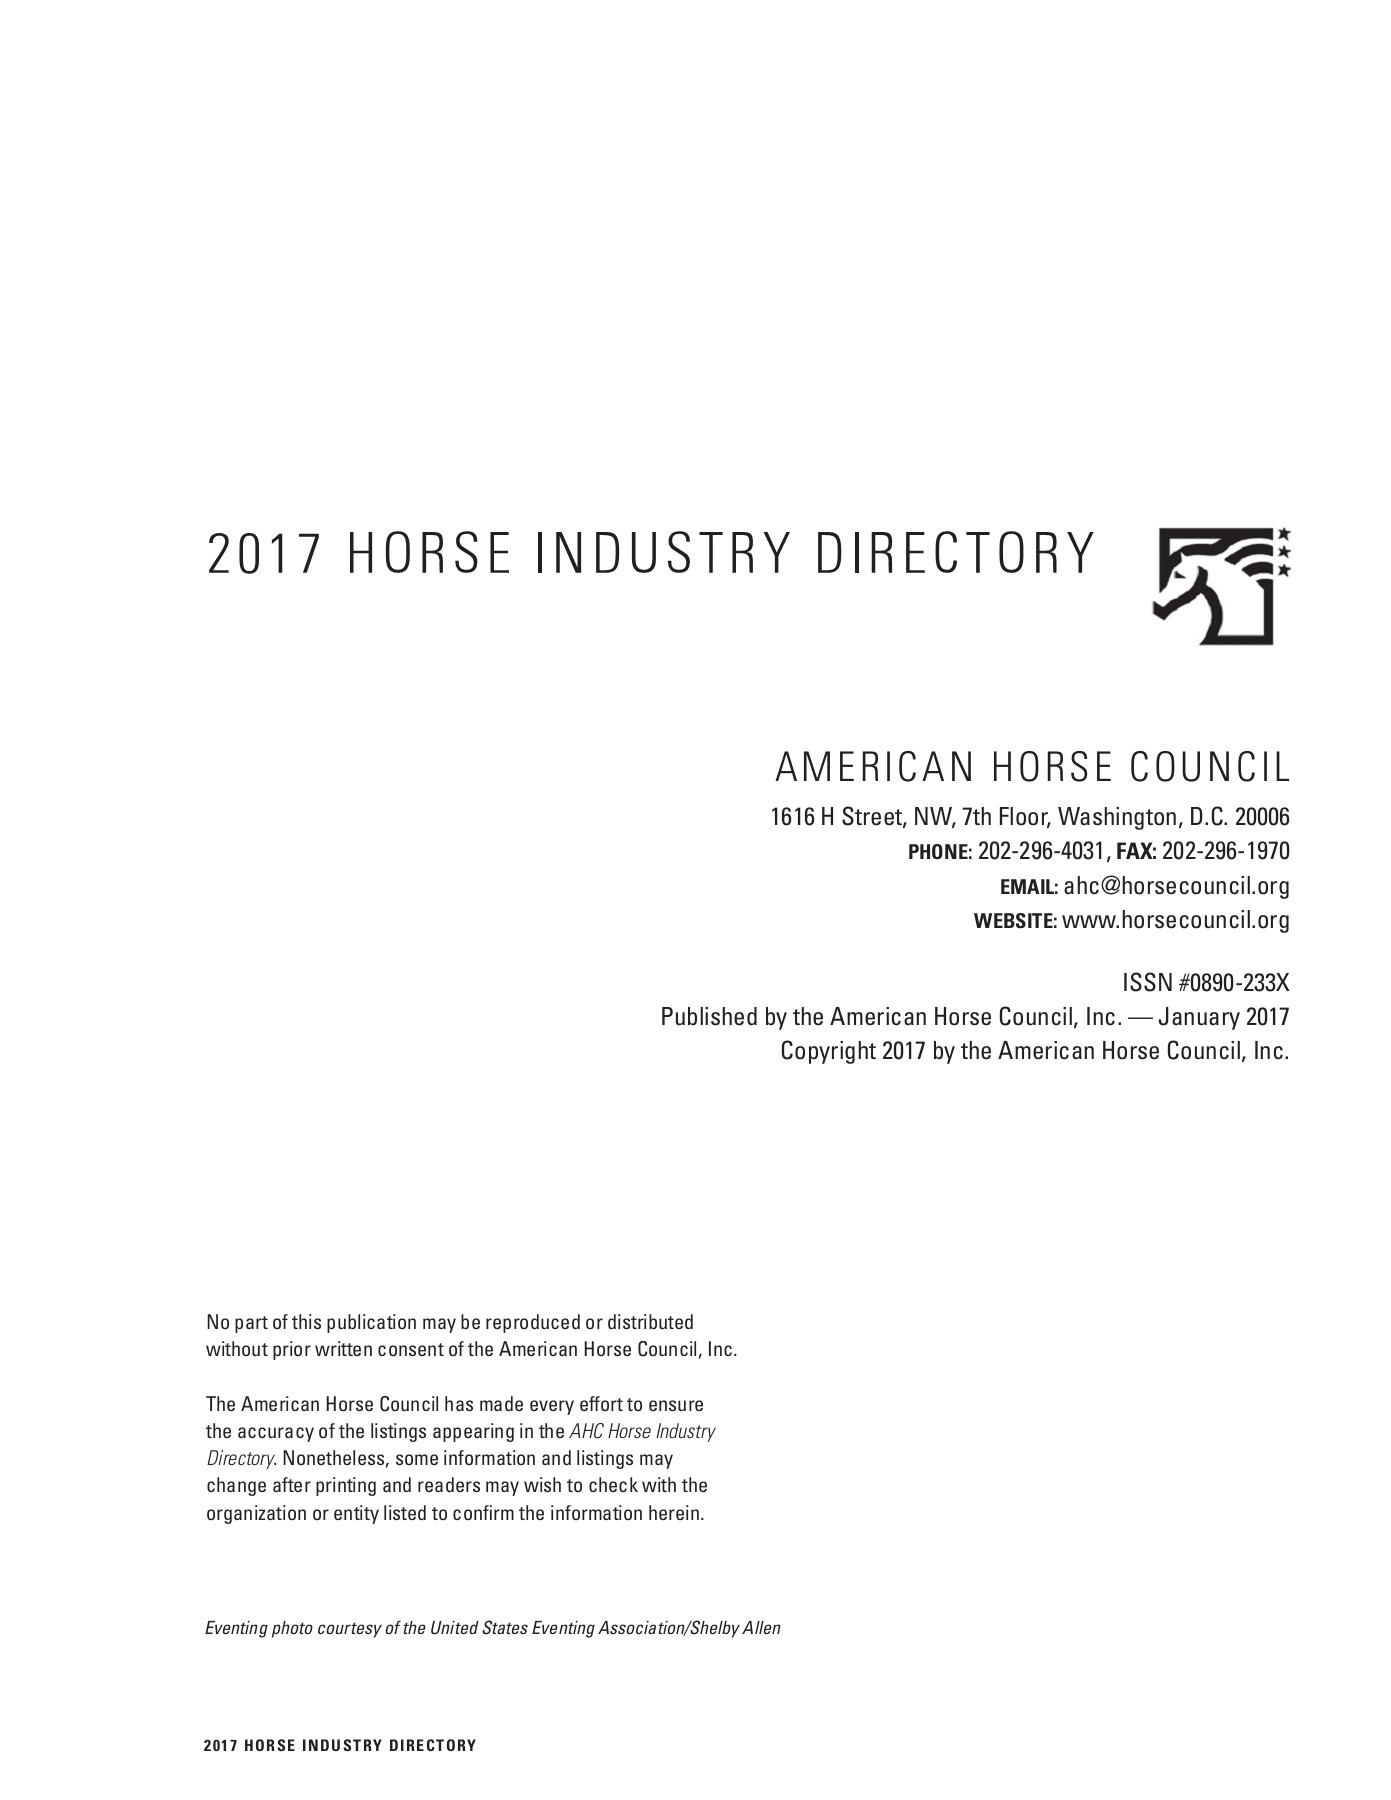 2017 Horse Industry Directory Pages 101 - 150 - Text Version | AnyFlip